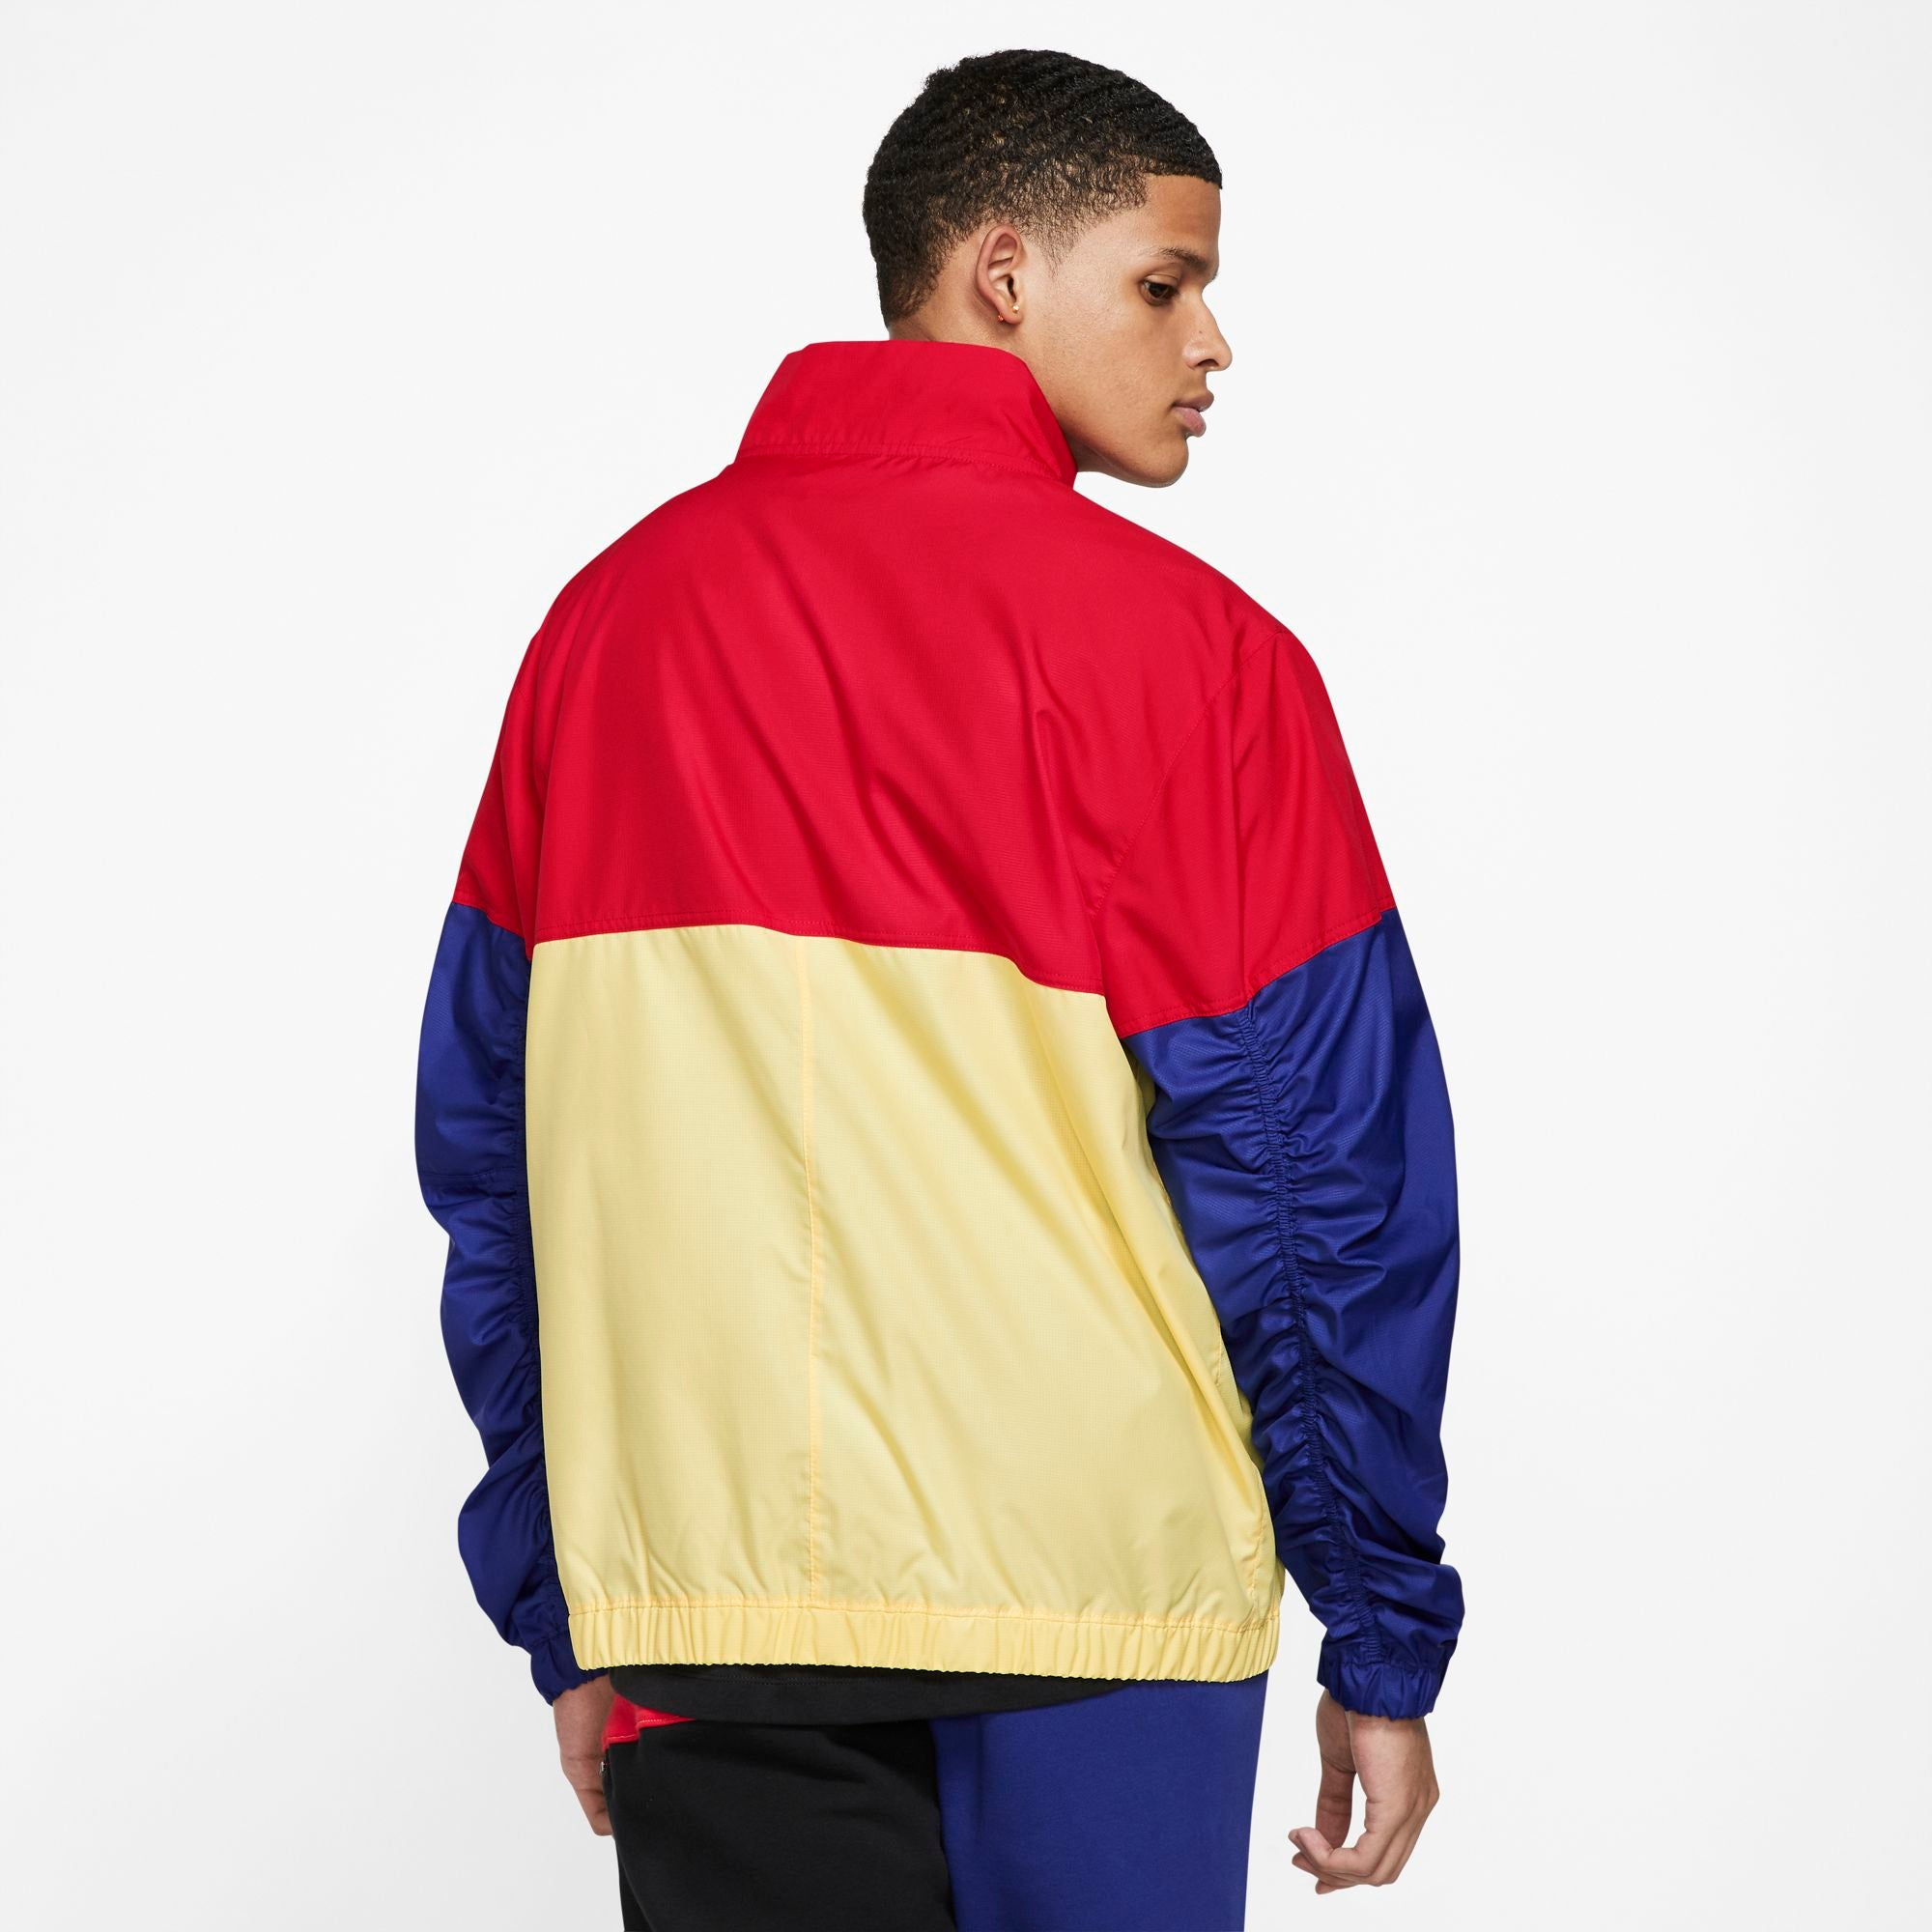 Nike Kyrie Lightweight Basketball Jacket - Deep Royal Blue/Bicycle Yellow/Black